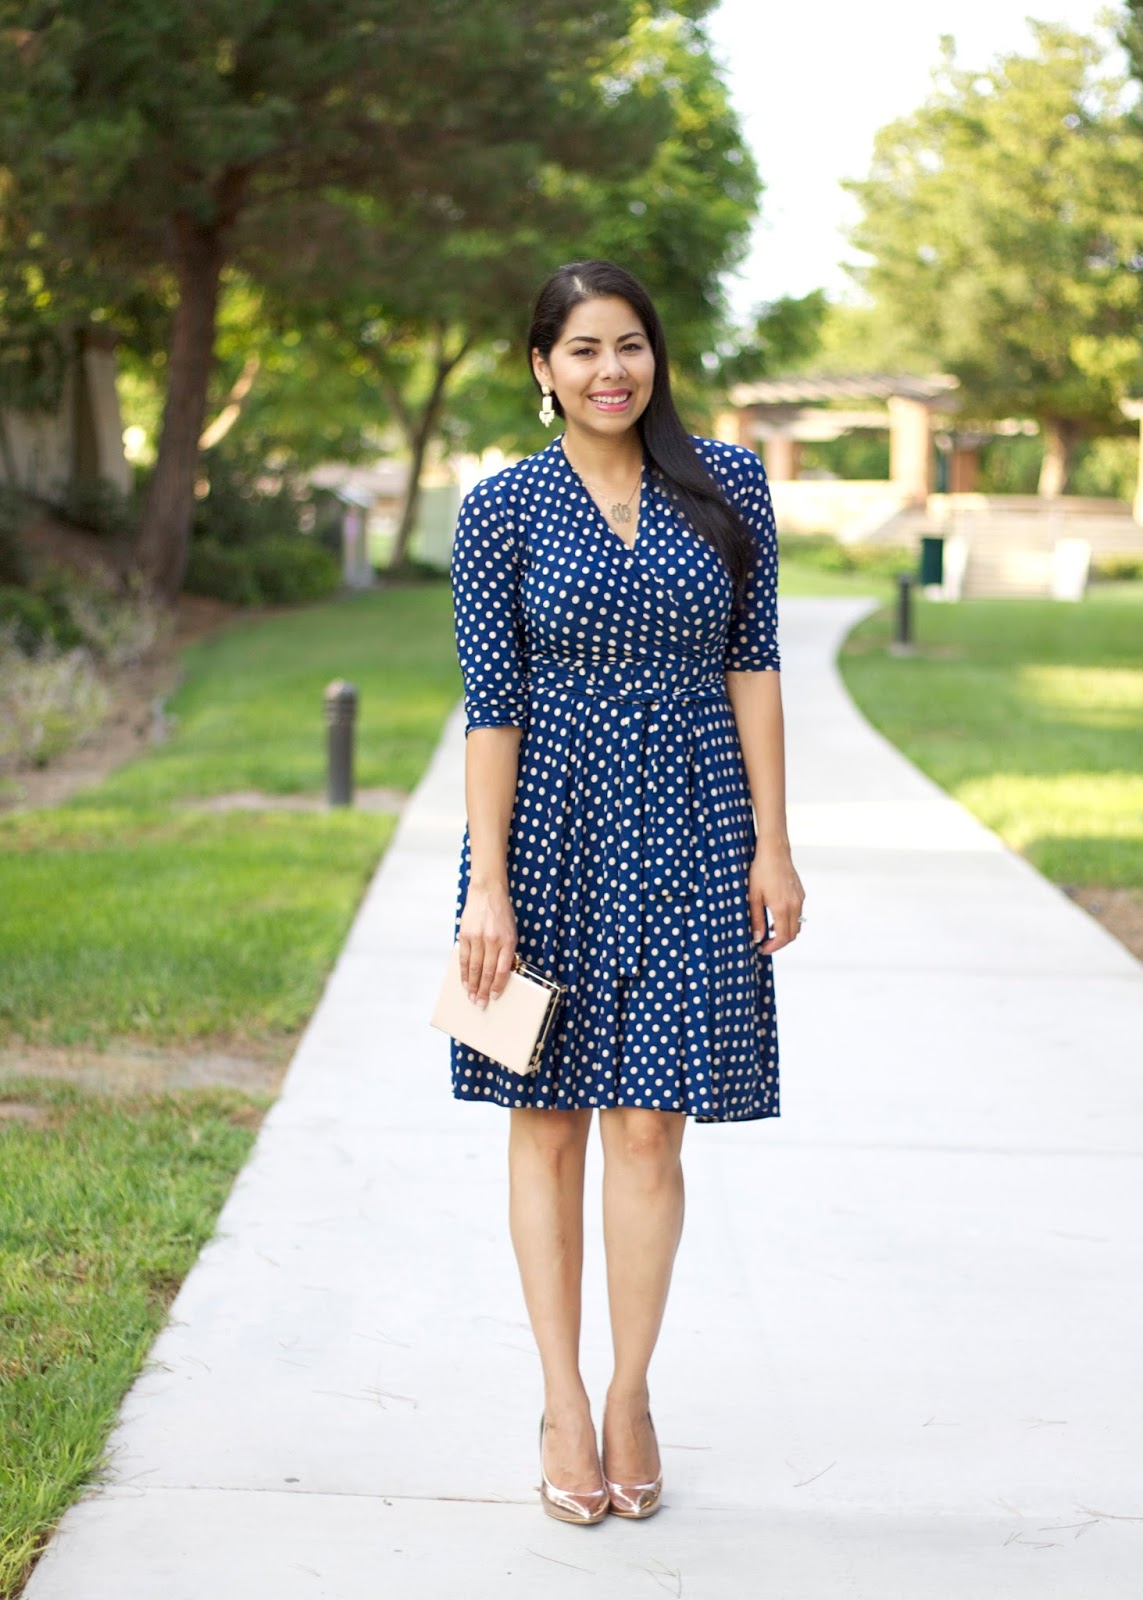 Polka dot dress, polka dot Karina Dress, Karina Megan Dress, navy blue dress outfit